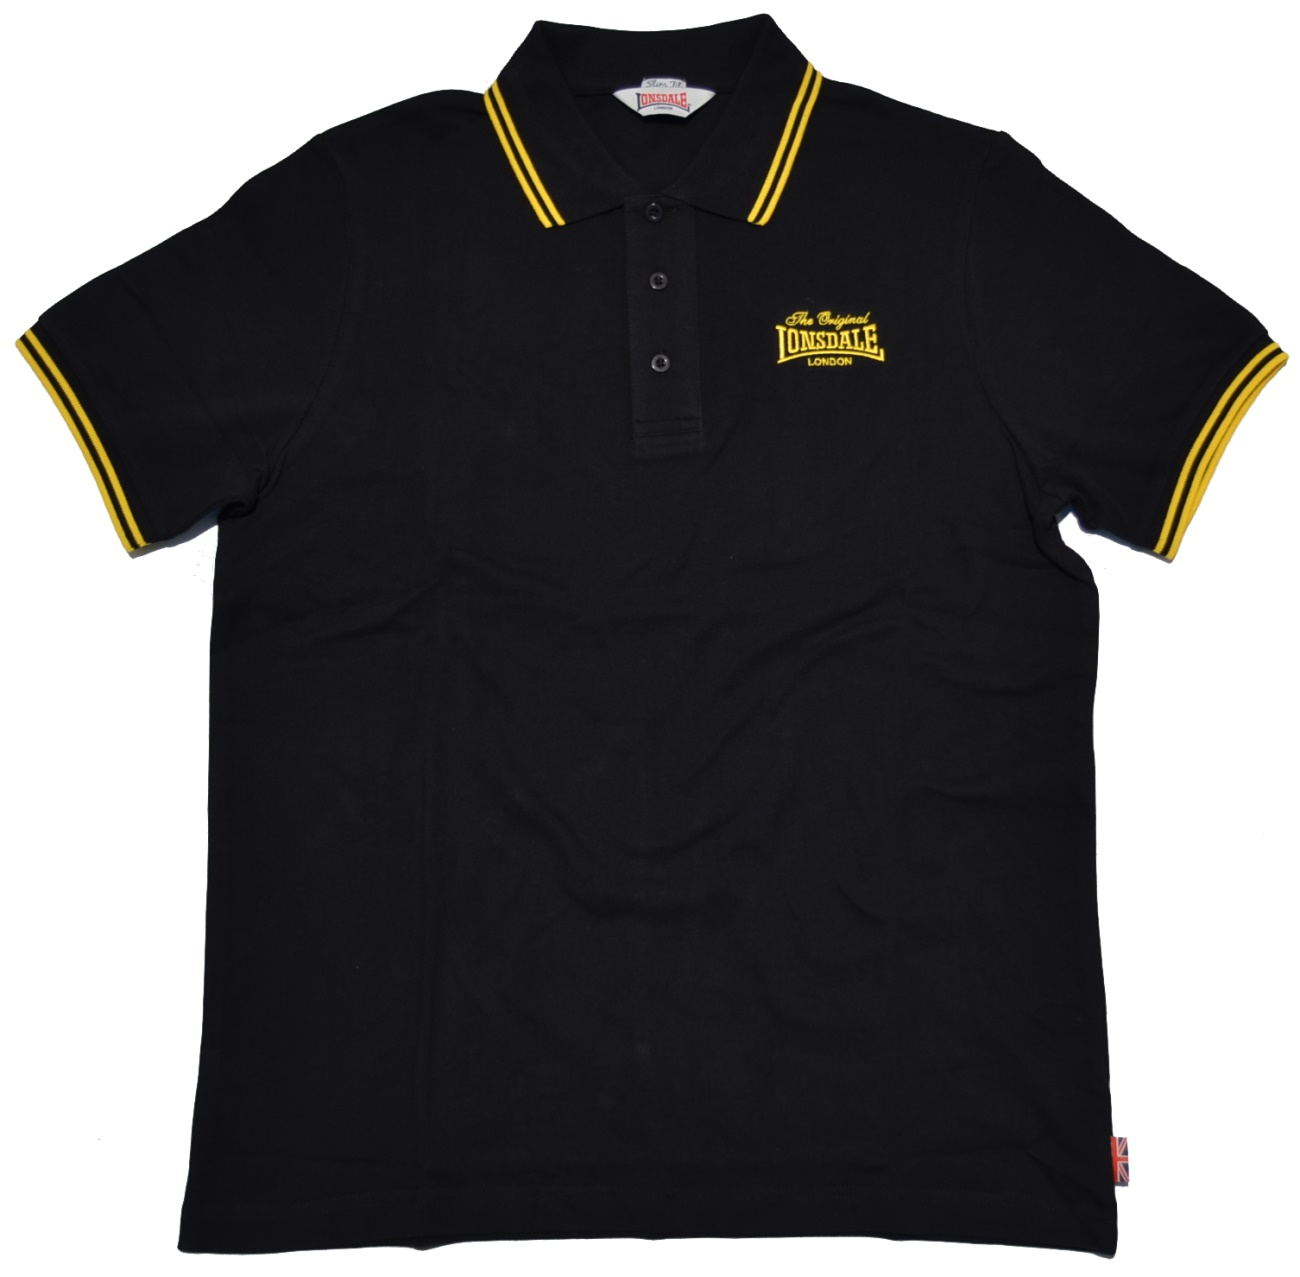 Lonsdale London Polo-Shirt Bridlington